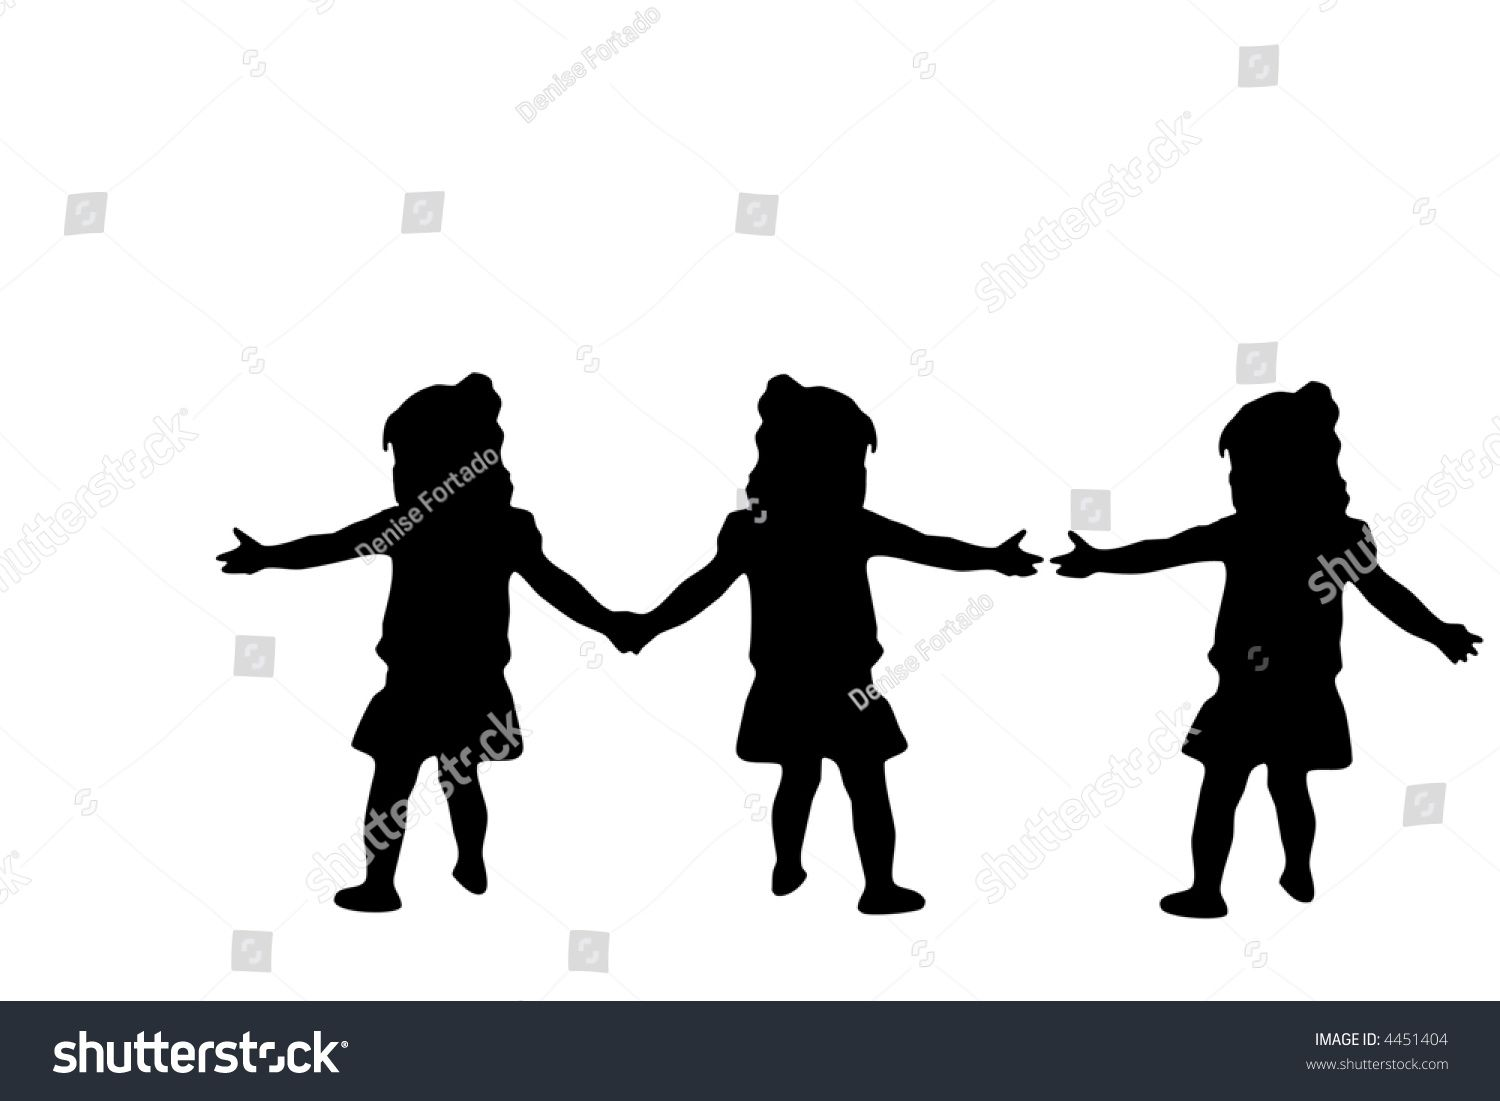 1500x1101 Silhouette Image Of 3 Women Silhouette Three Girls Joining Hands